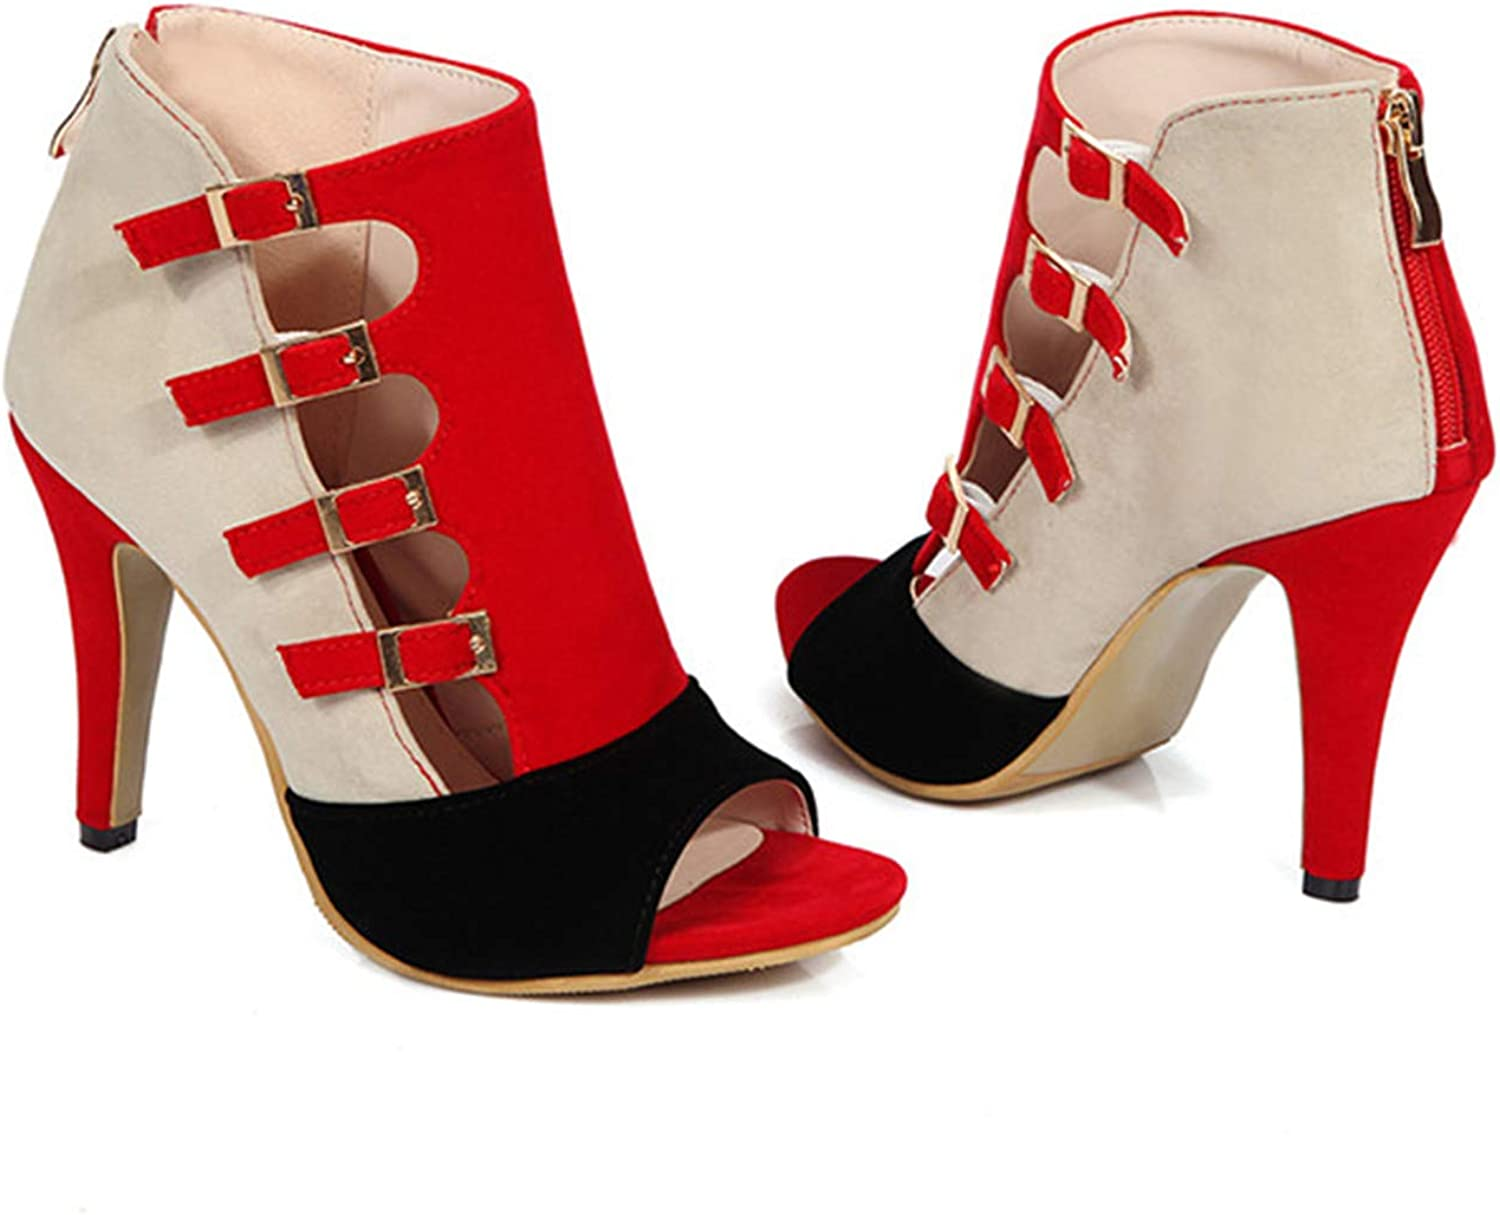 Women High Heels Gladiator shoes Summer Party Pumps Red Buckle High Heel shoes Zip Chaussure